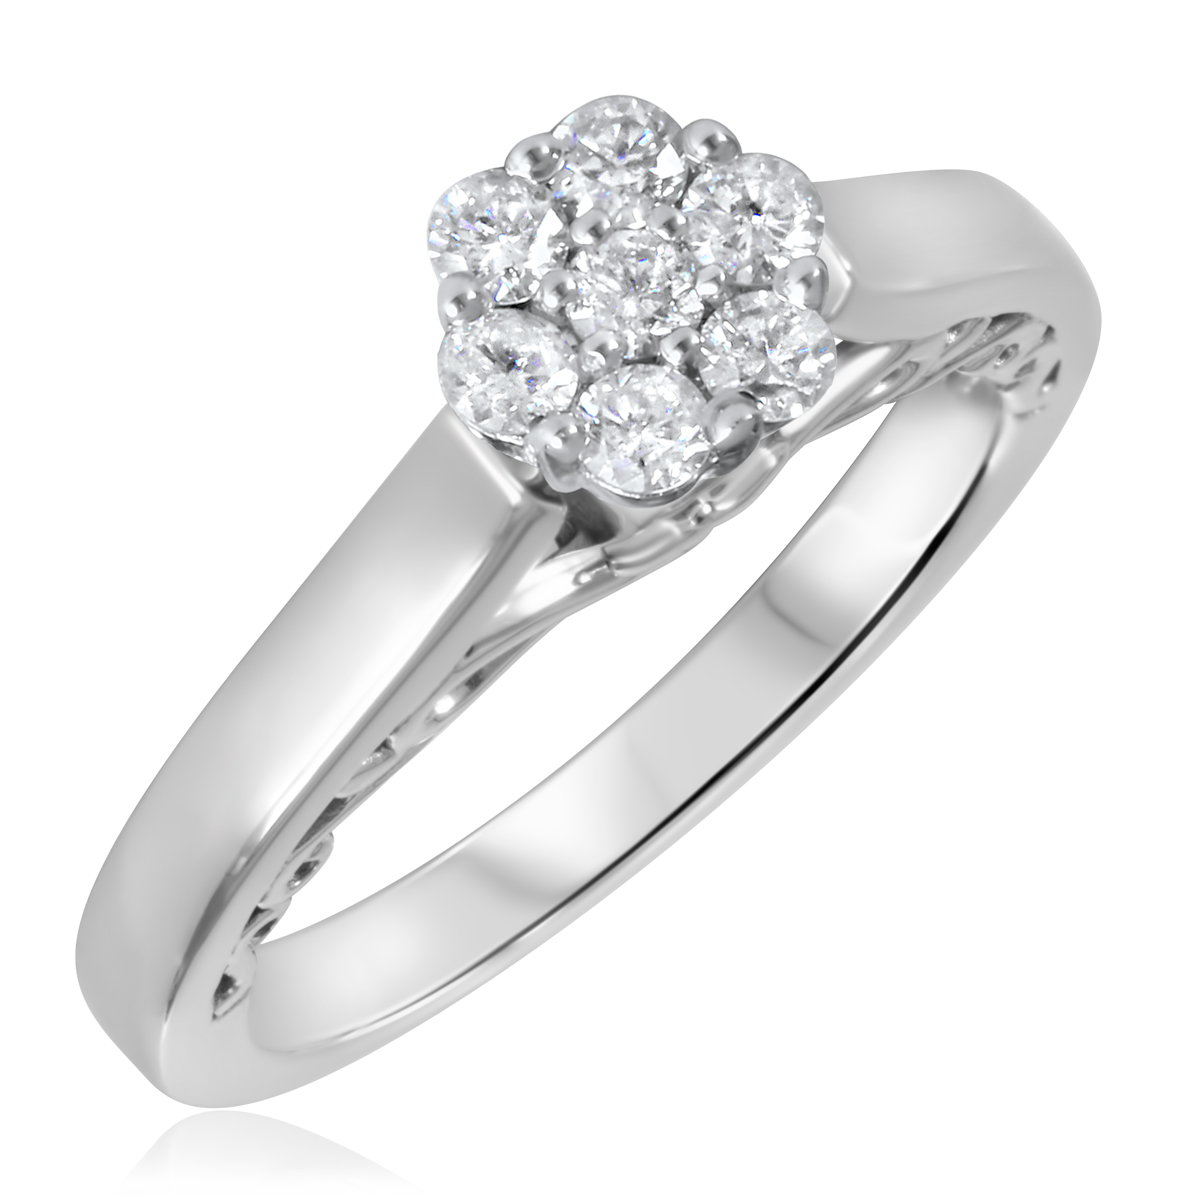 1/3 CT. T.W. Diamond Ladies Engagement Ring 10K White Gold- Size 8